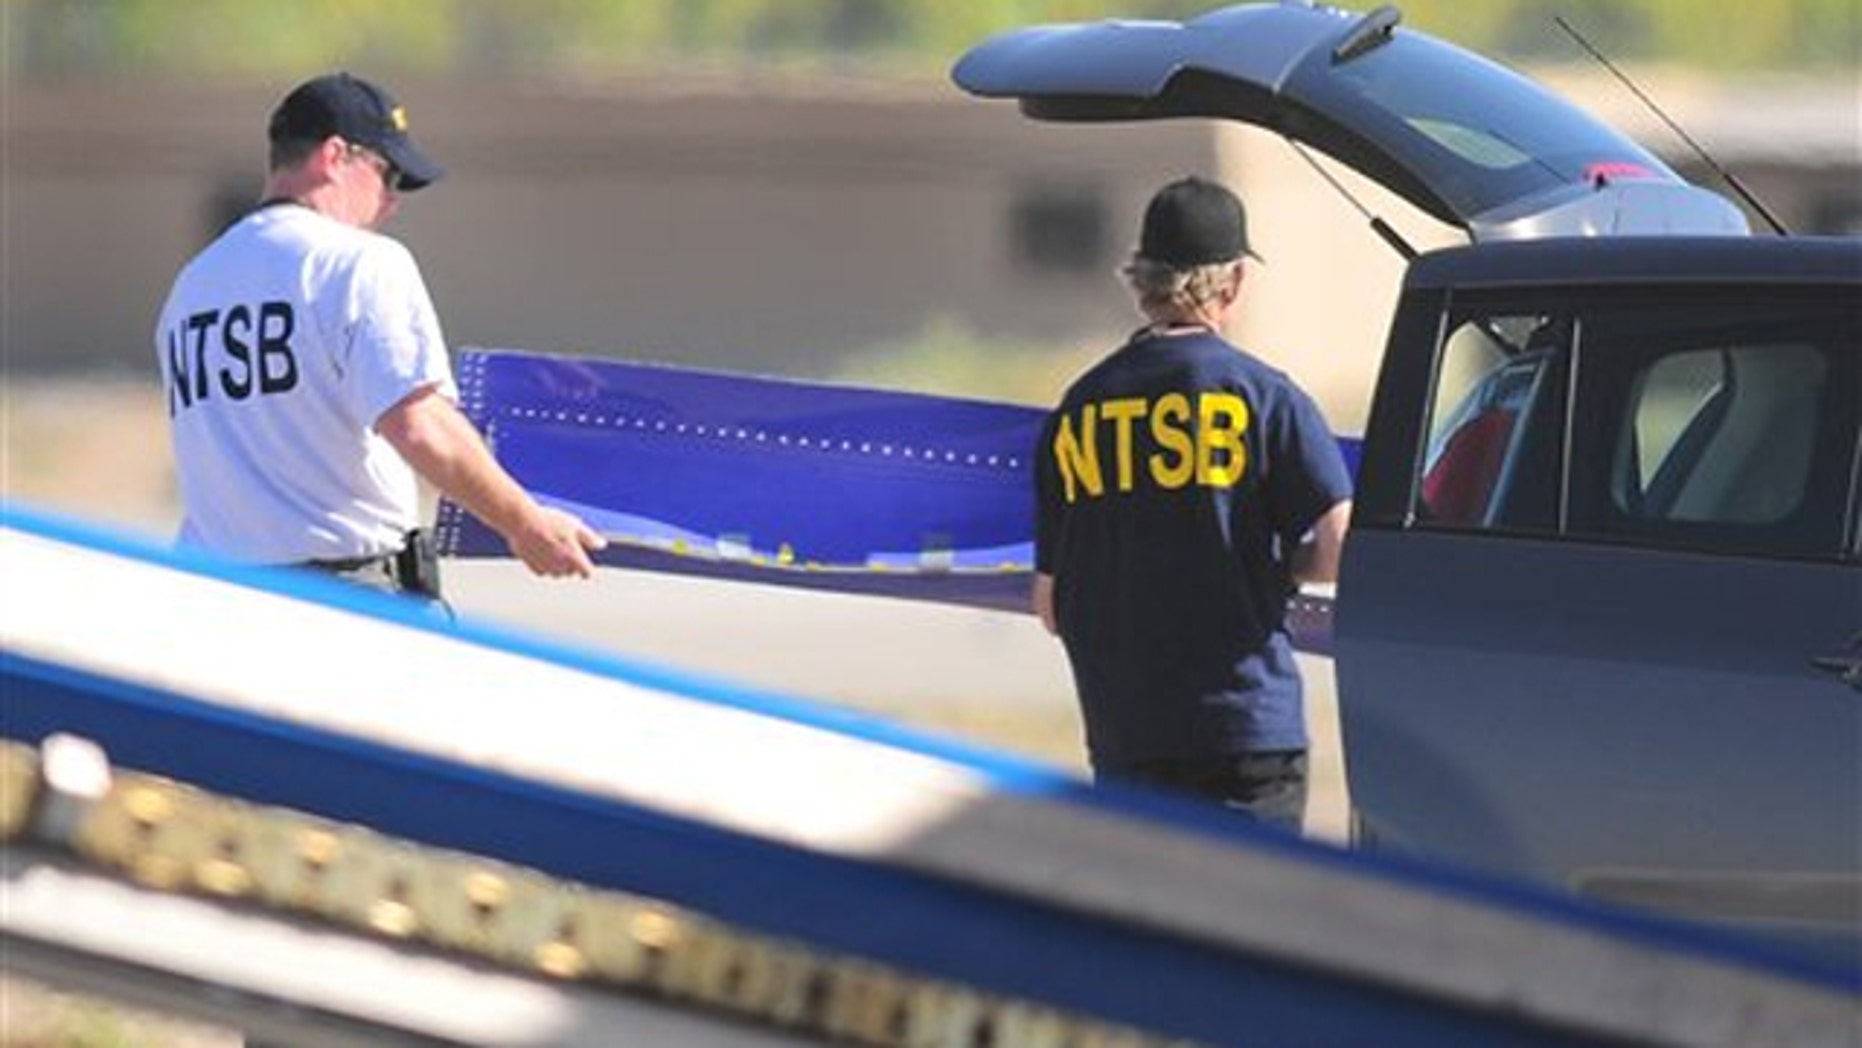 Members of the National Transportation and Safety Board investigating the emergency landing of Southwest Airlines flight 812, carry a portion of the planes fuselage to a waiting vehicle on April 3 in Yuma, Ariz.